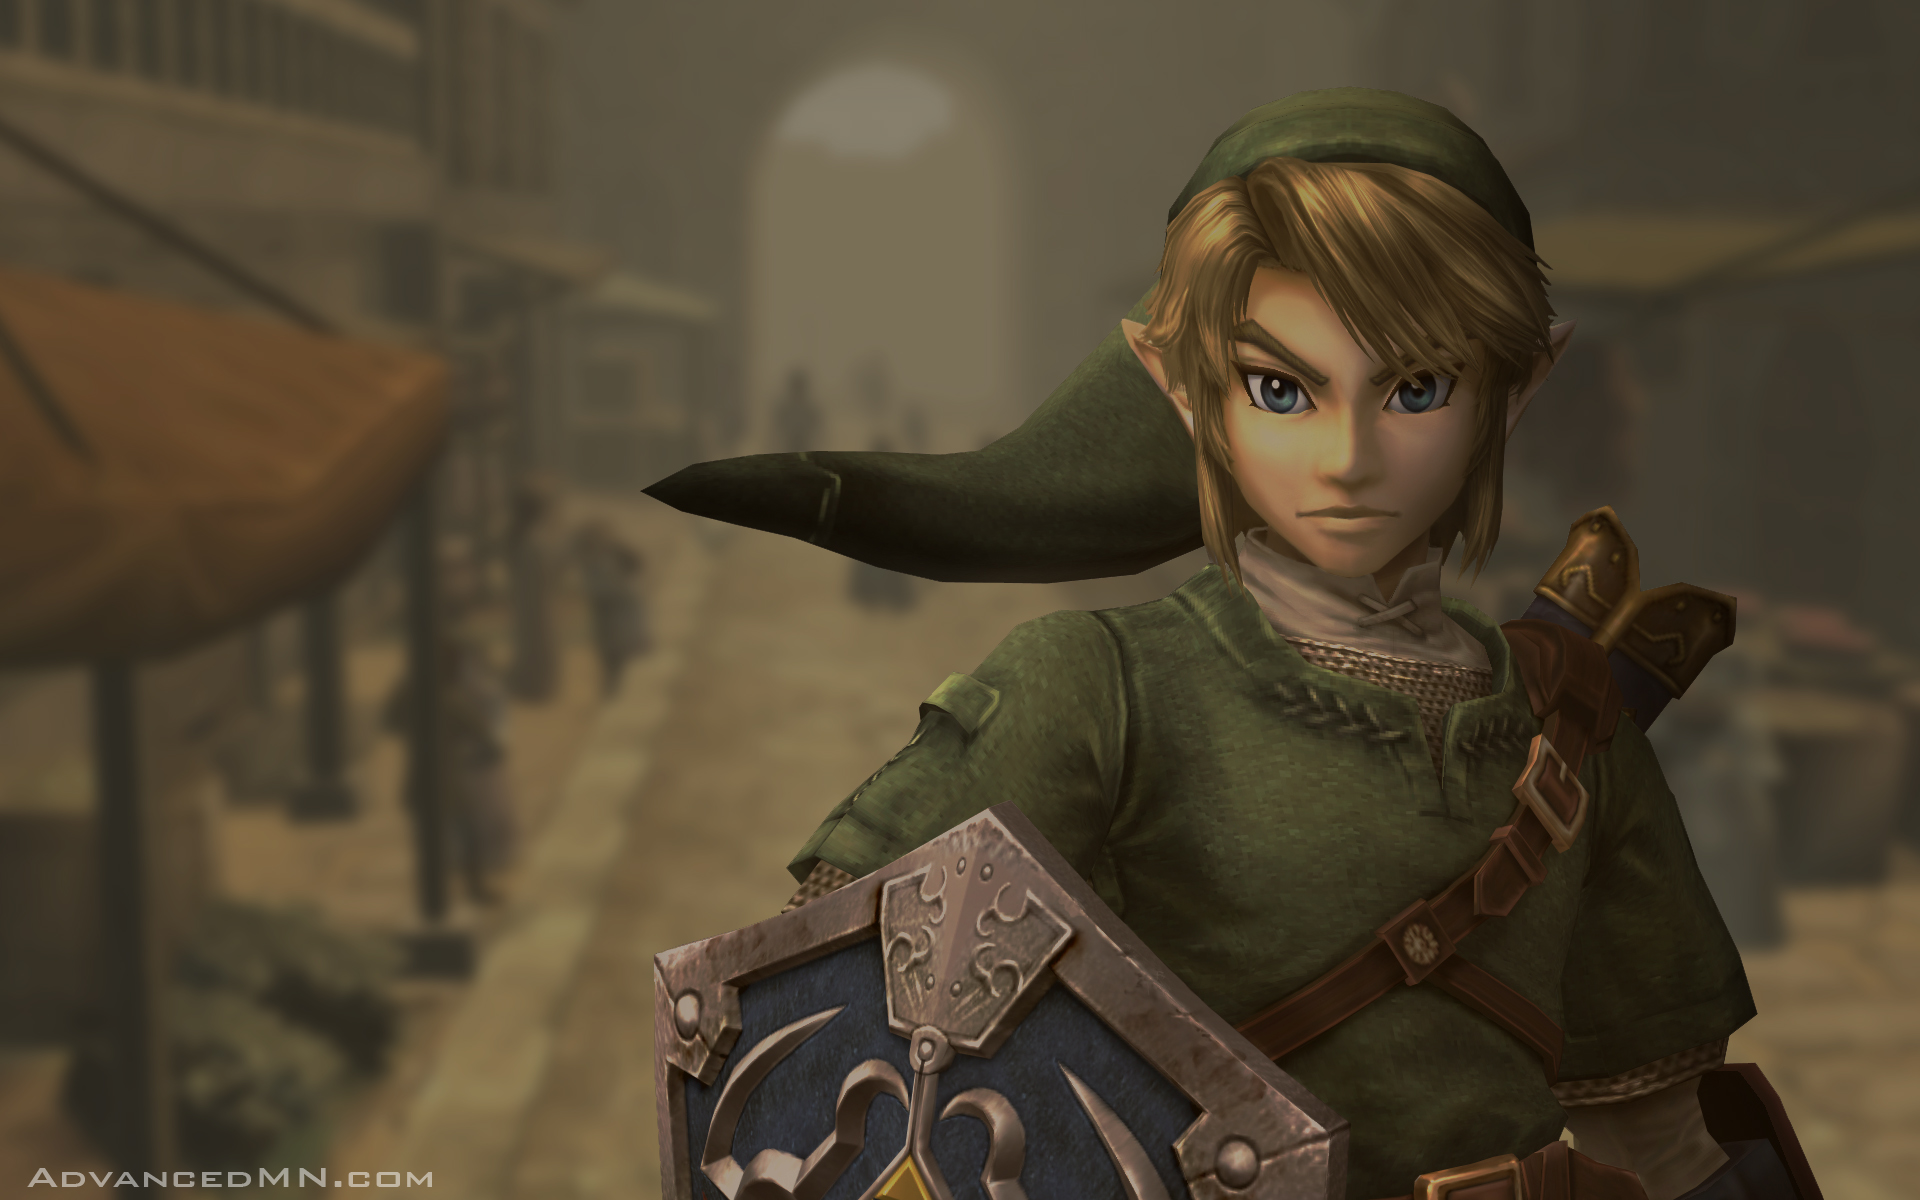 Twilight princess pic 10